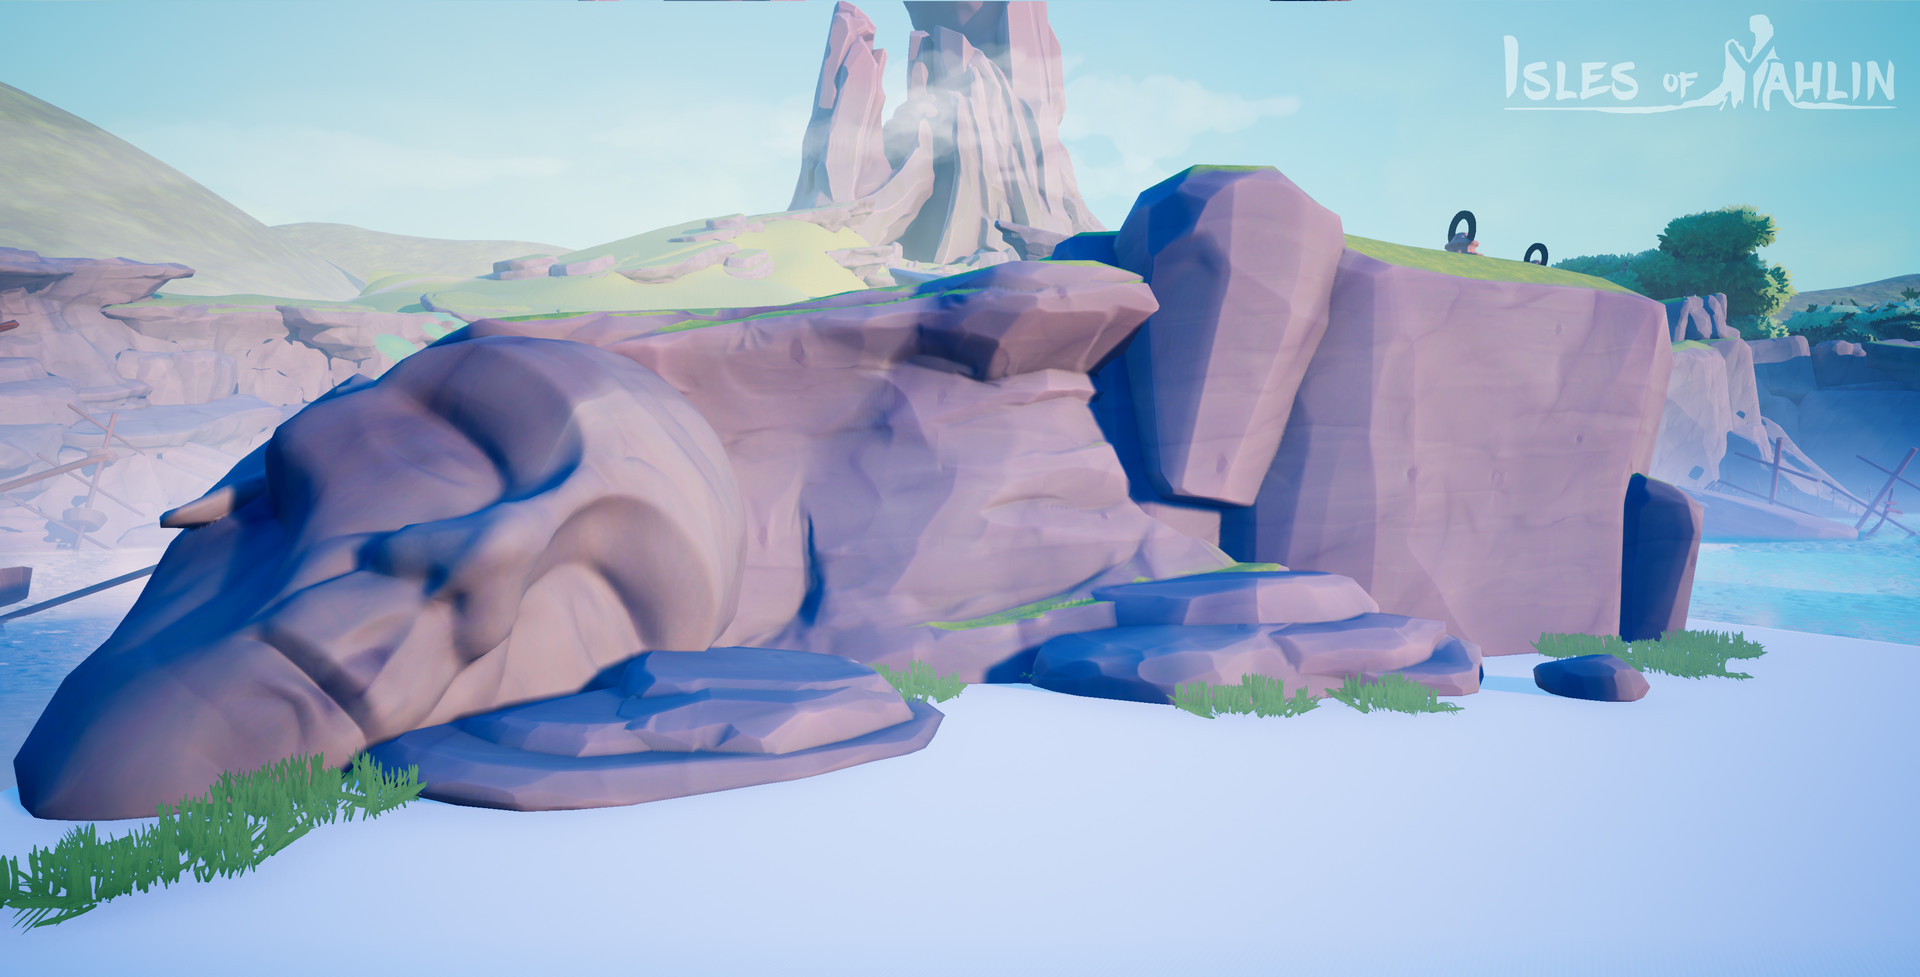 One of each rock asset combined into a simple composition